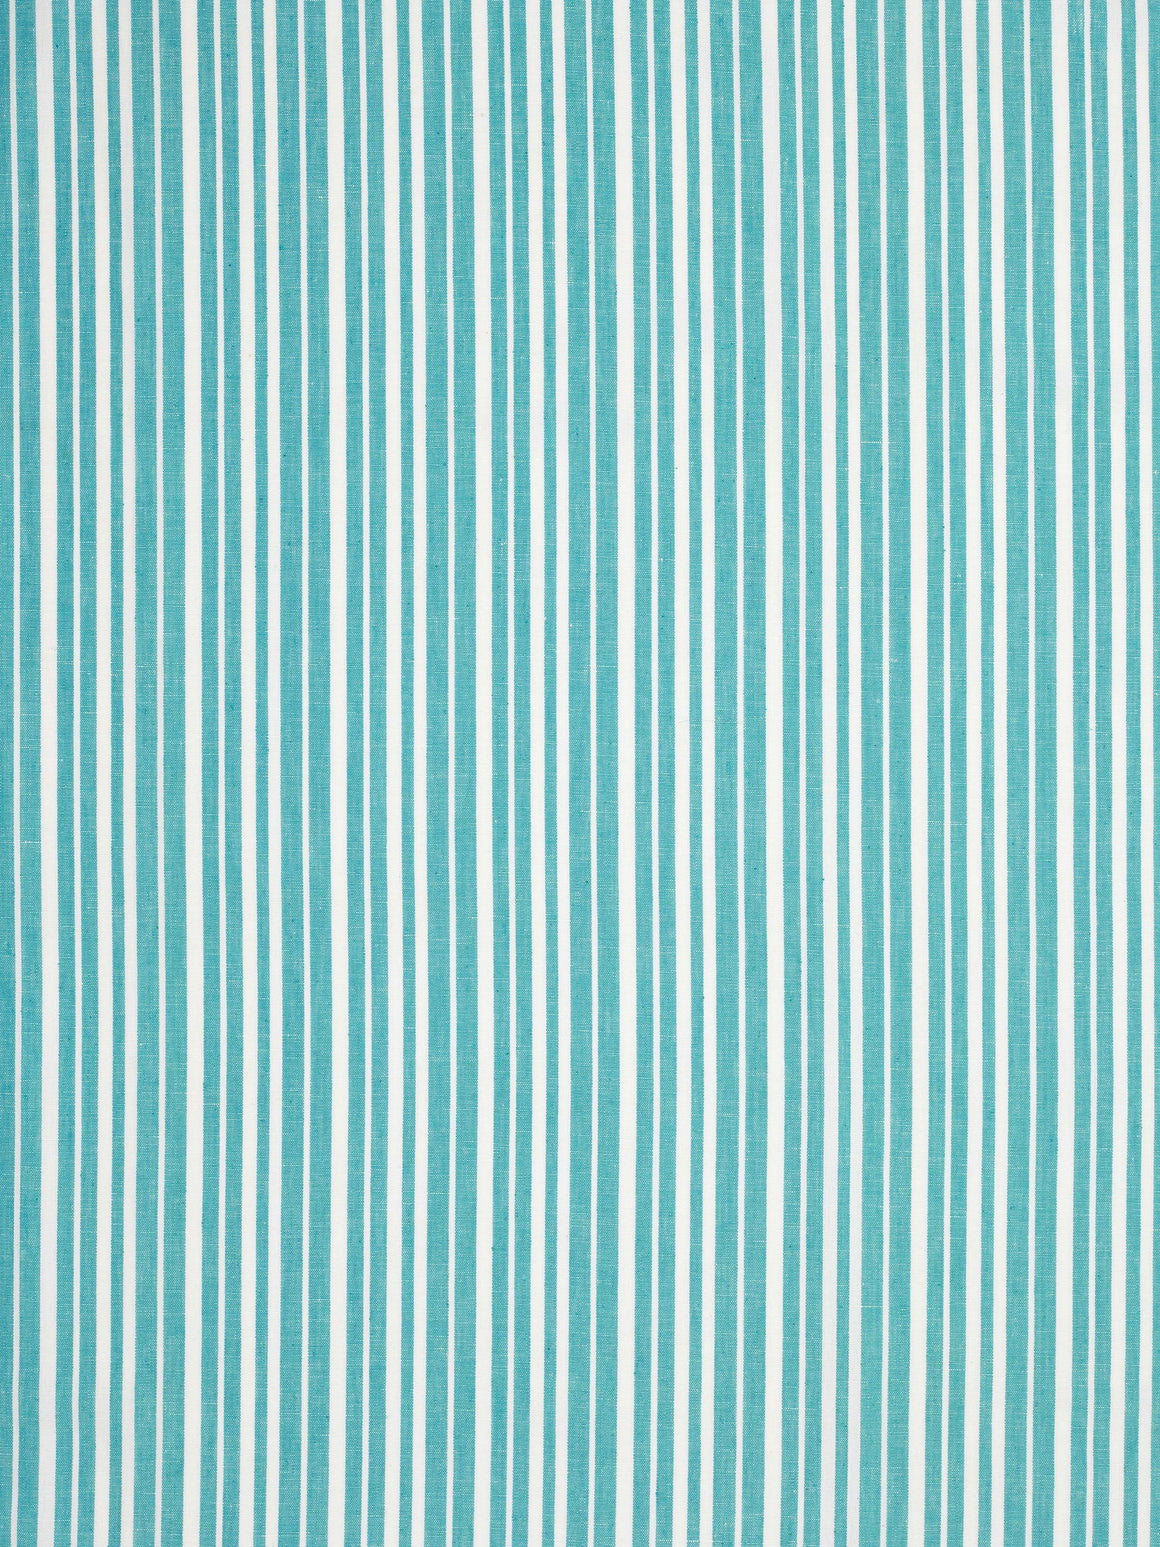 Palermo Ticking Stripe Cotton Linen Fabric by the Meter in Pacific Turquoise Blue